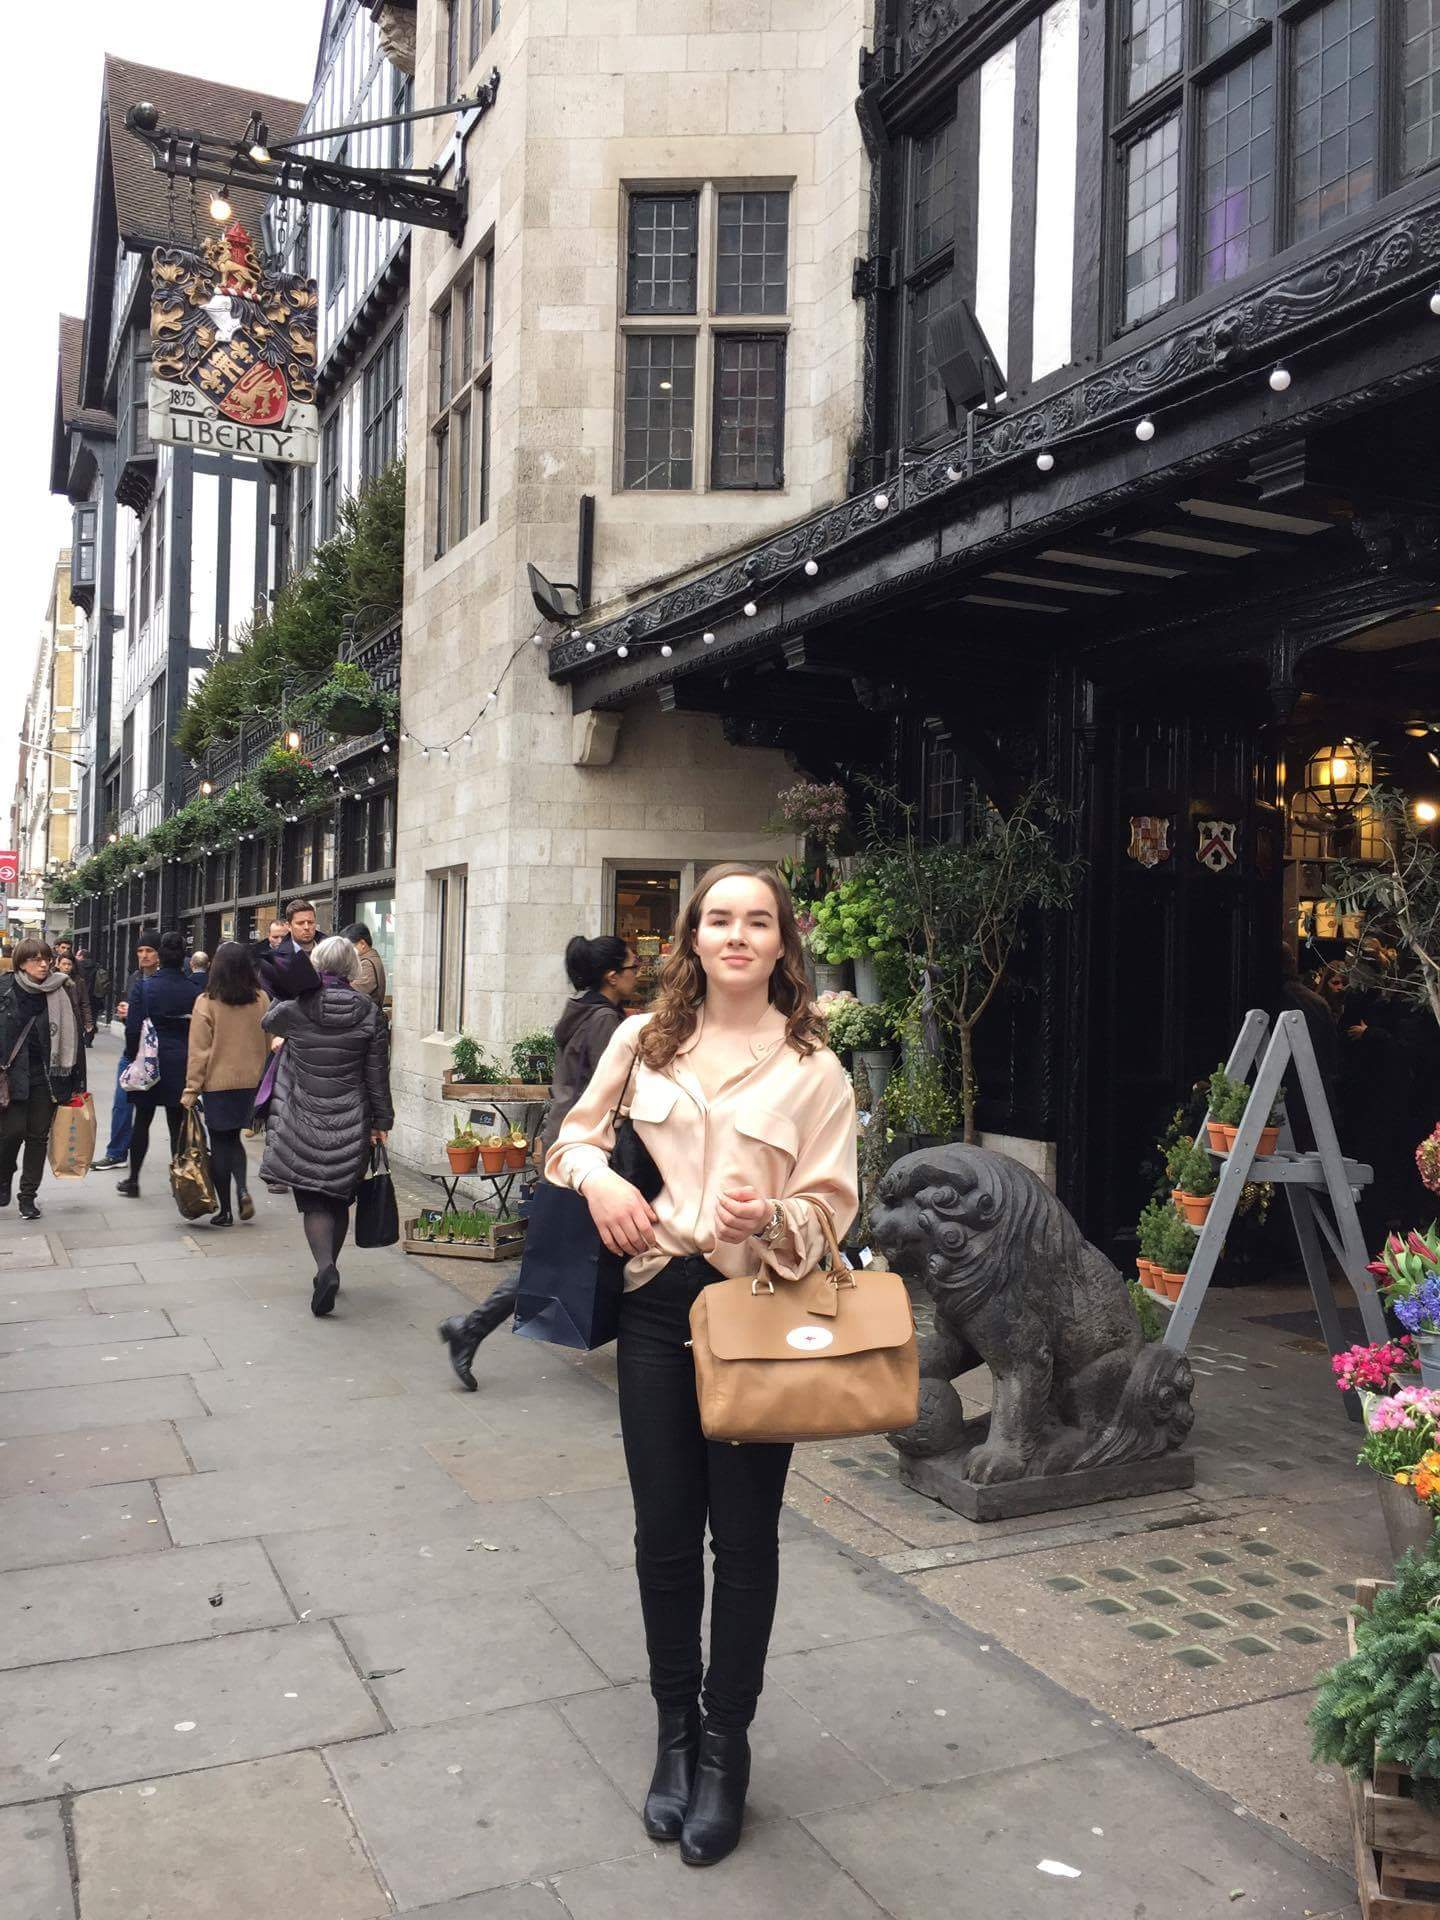 Hege Bellika Hansen from the MAYAWATER-team outside of LIBERTY LONDON